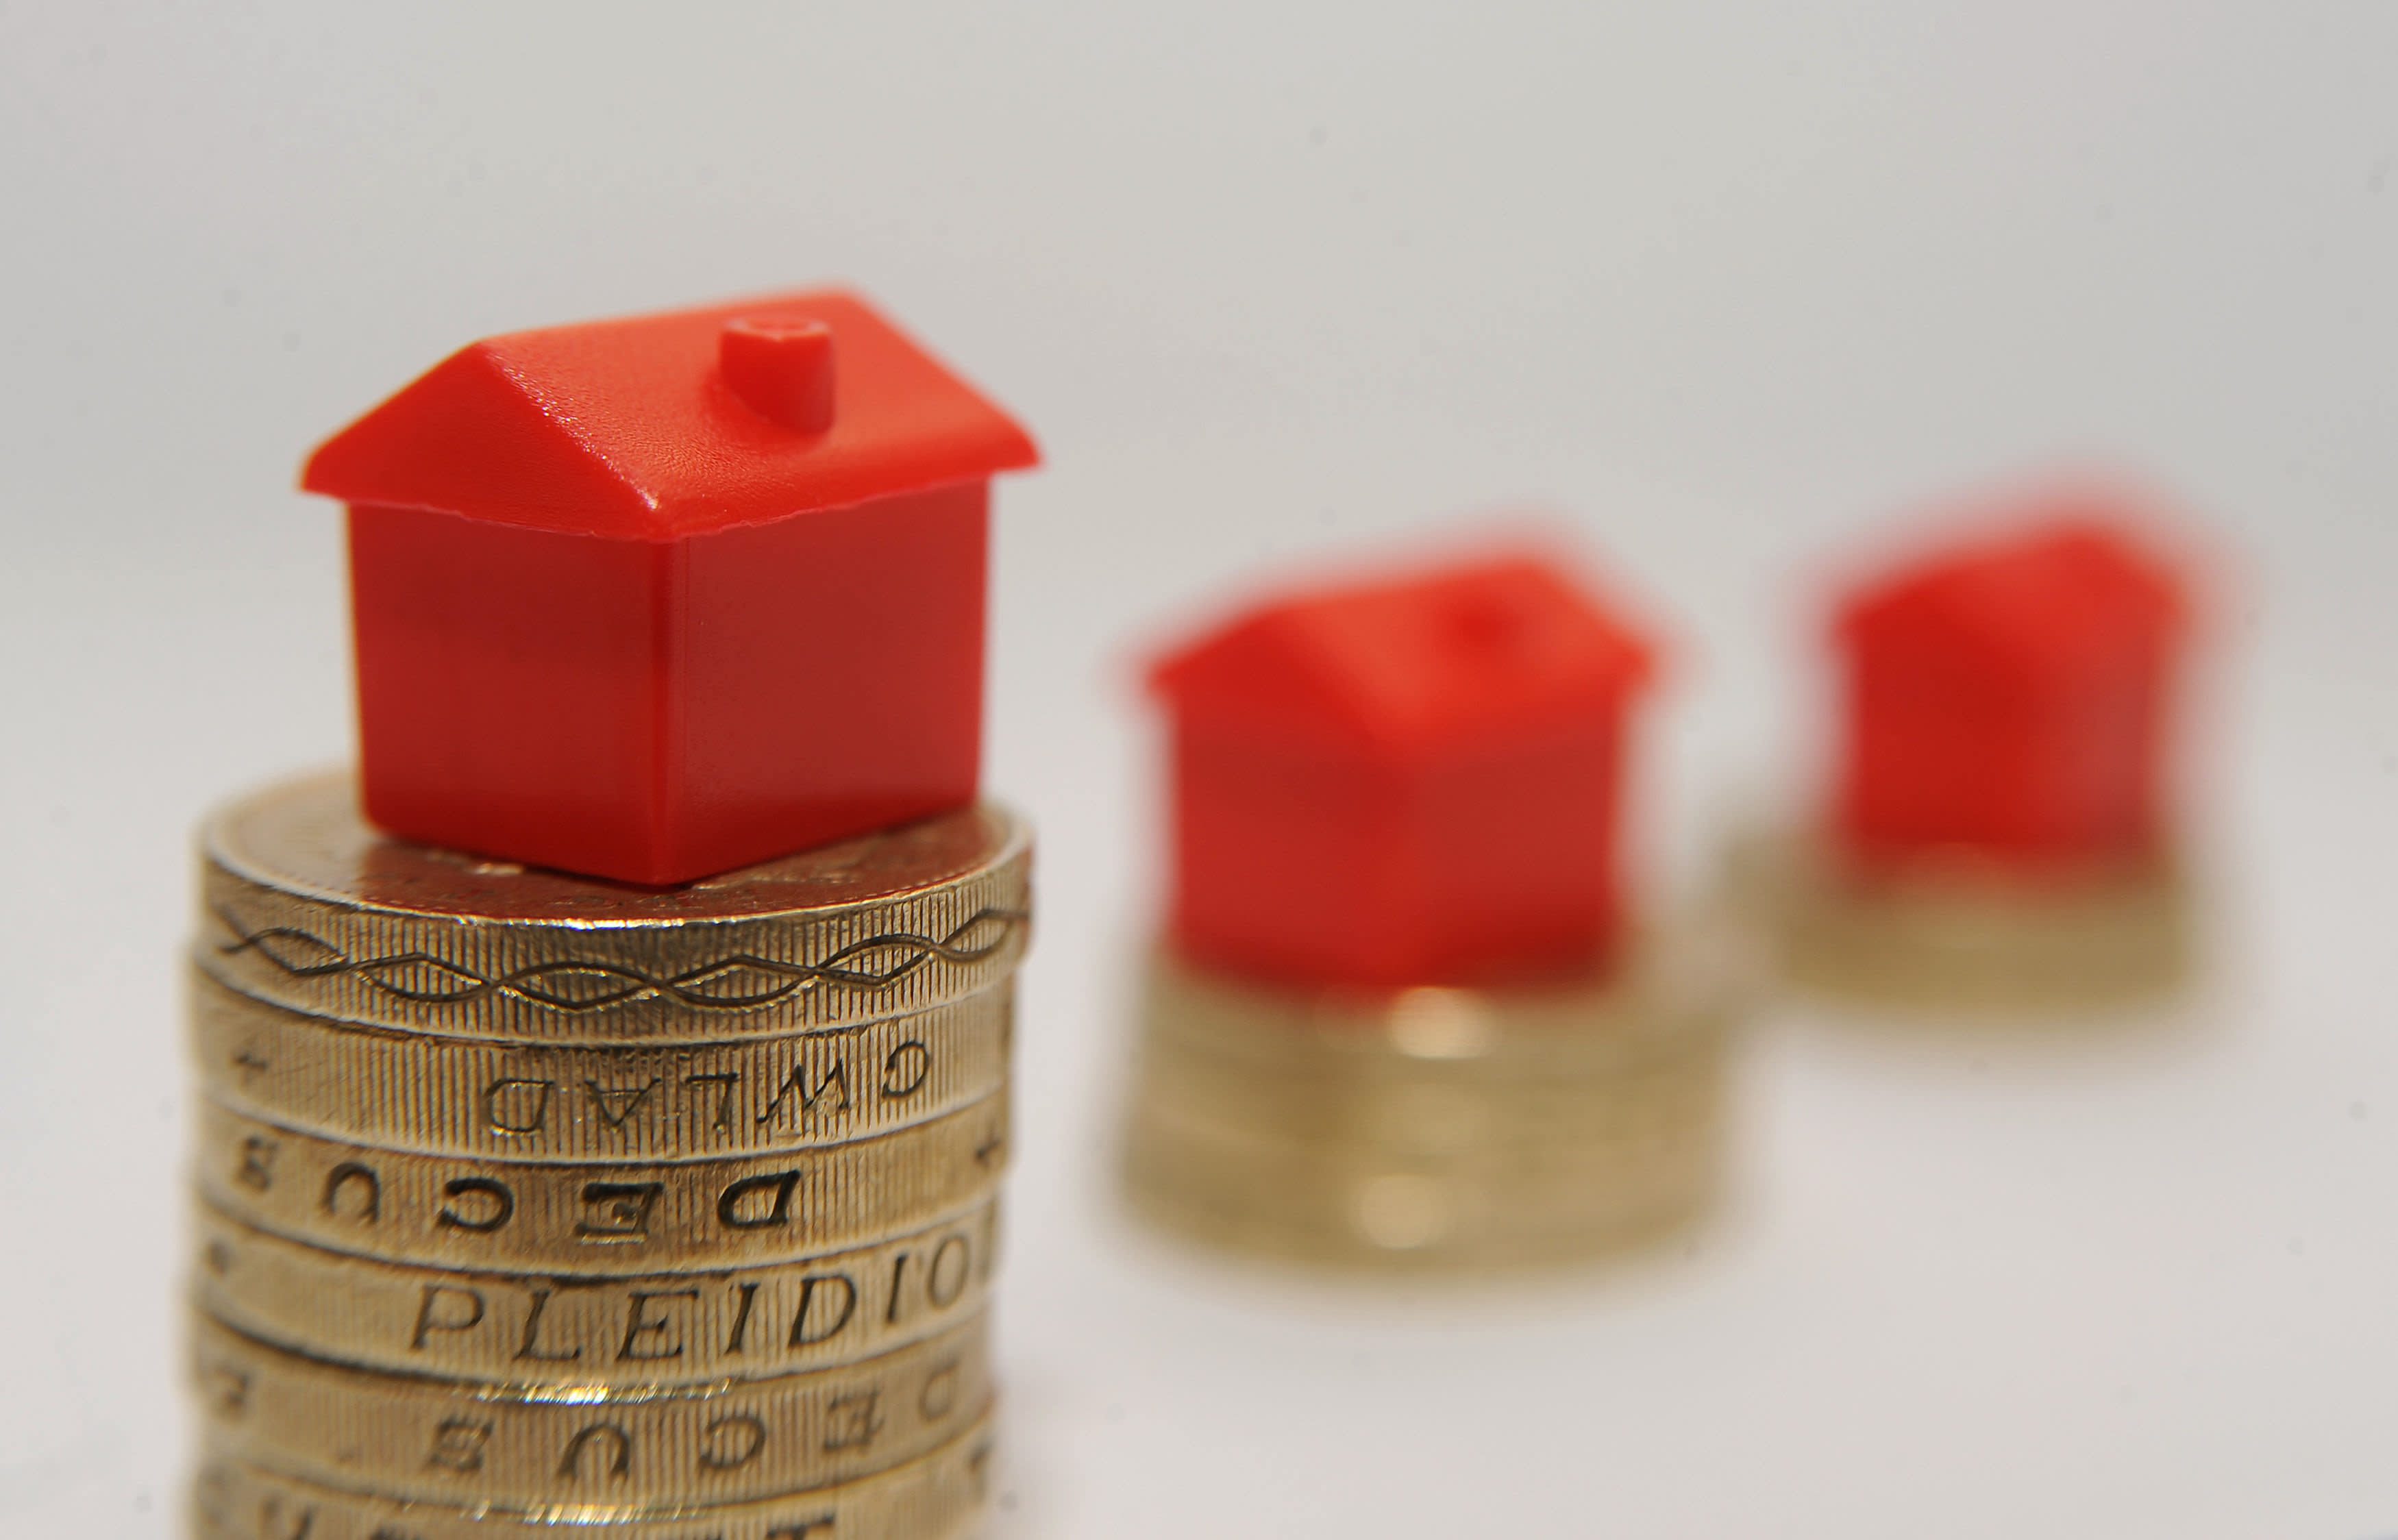 Call for new product combining mortgages and pensions